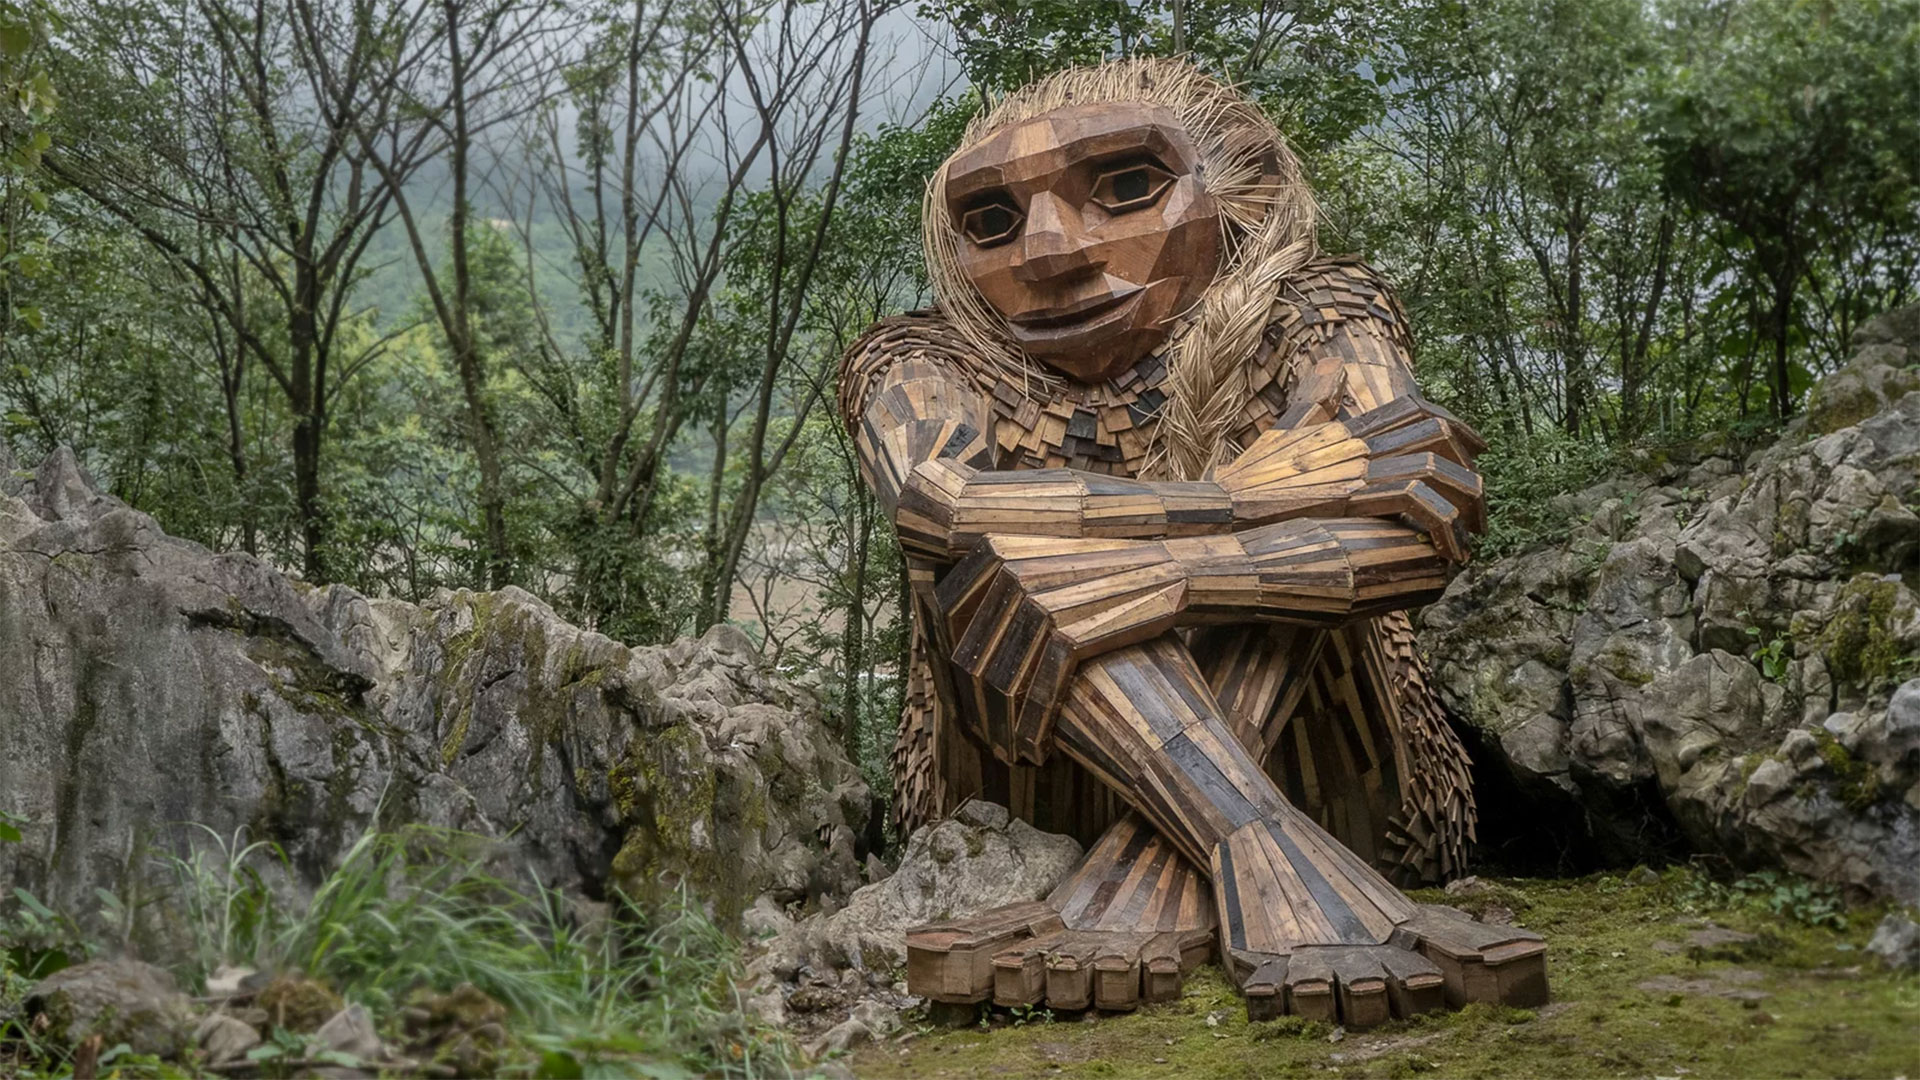 """""""Recycle art activist"""" Thomas Dambo makes gentle giants from scrap wood, old pallets, twigs and debris. Above, the troll Marit in It Sounded Like a Mountain Fell in Wulong, China."""